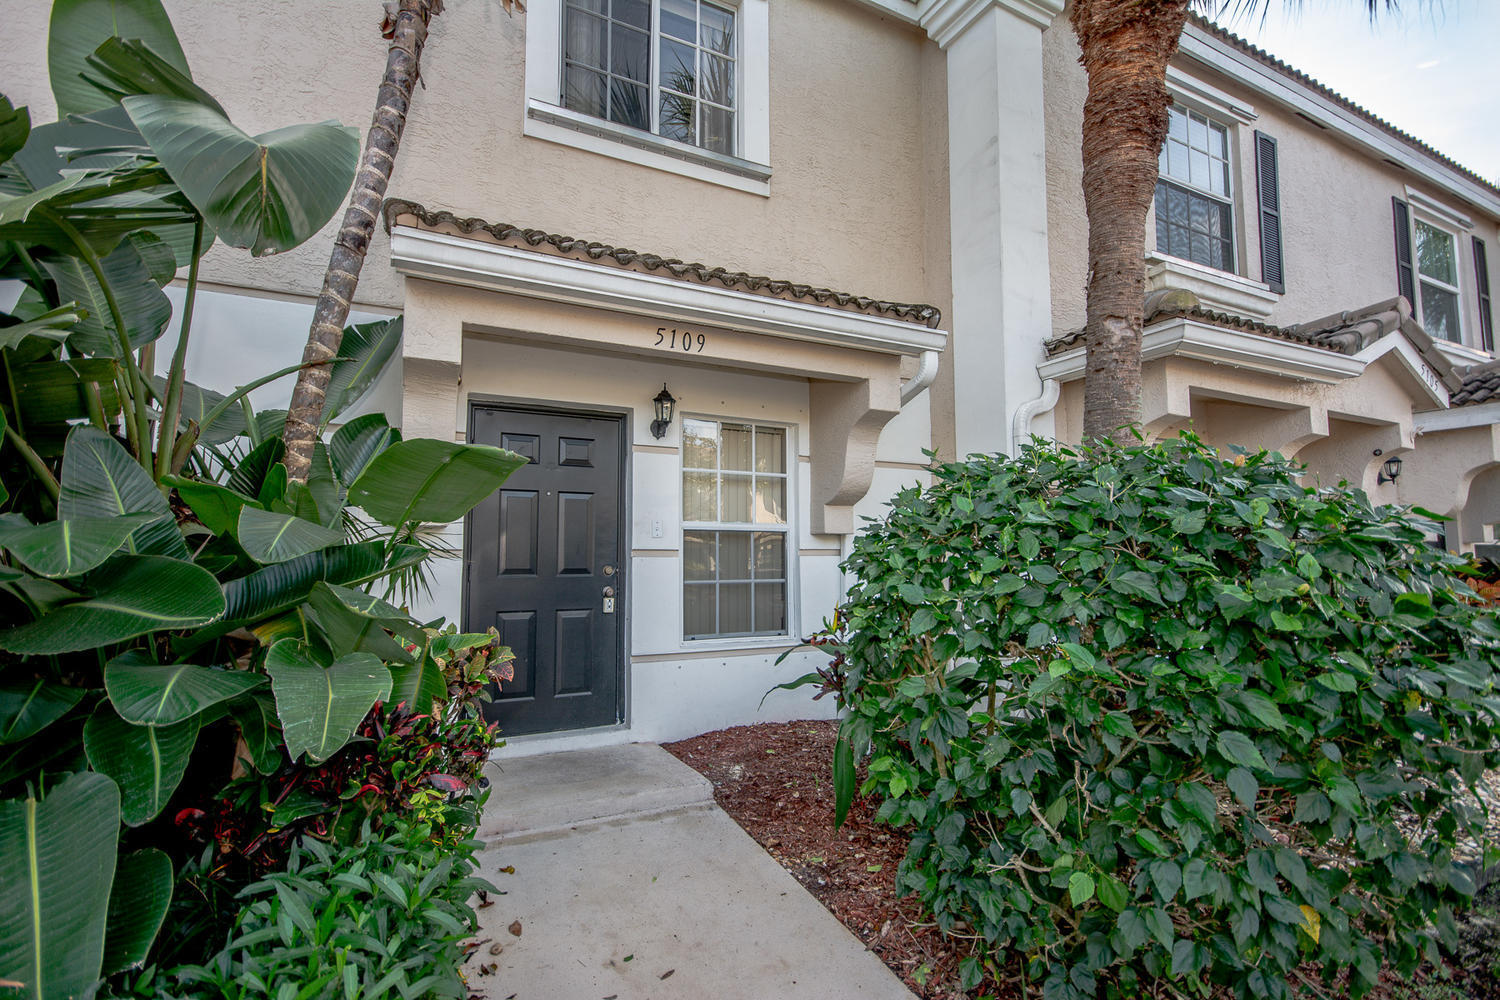 Home for sale in Jonathans Cove Palmbrooke Townhomes West Palm Beach Florida